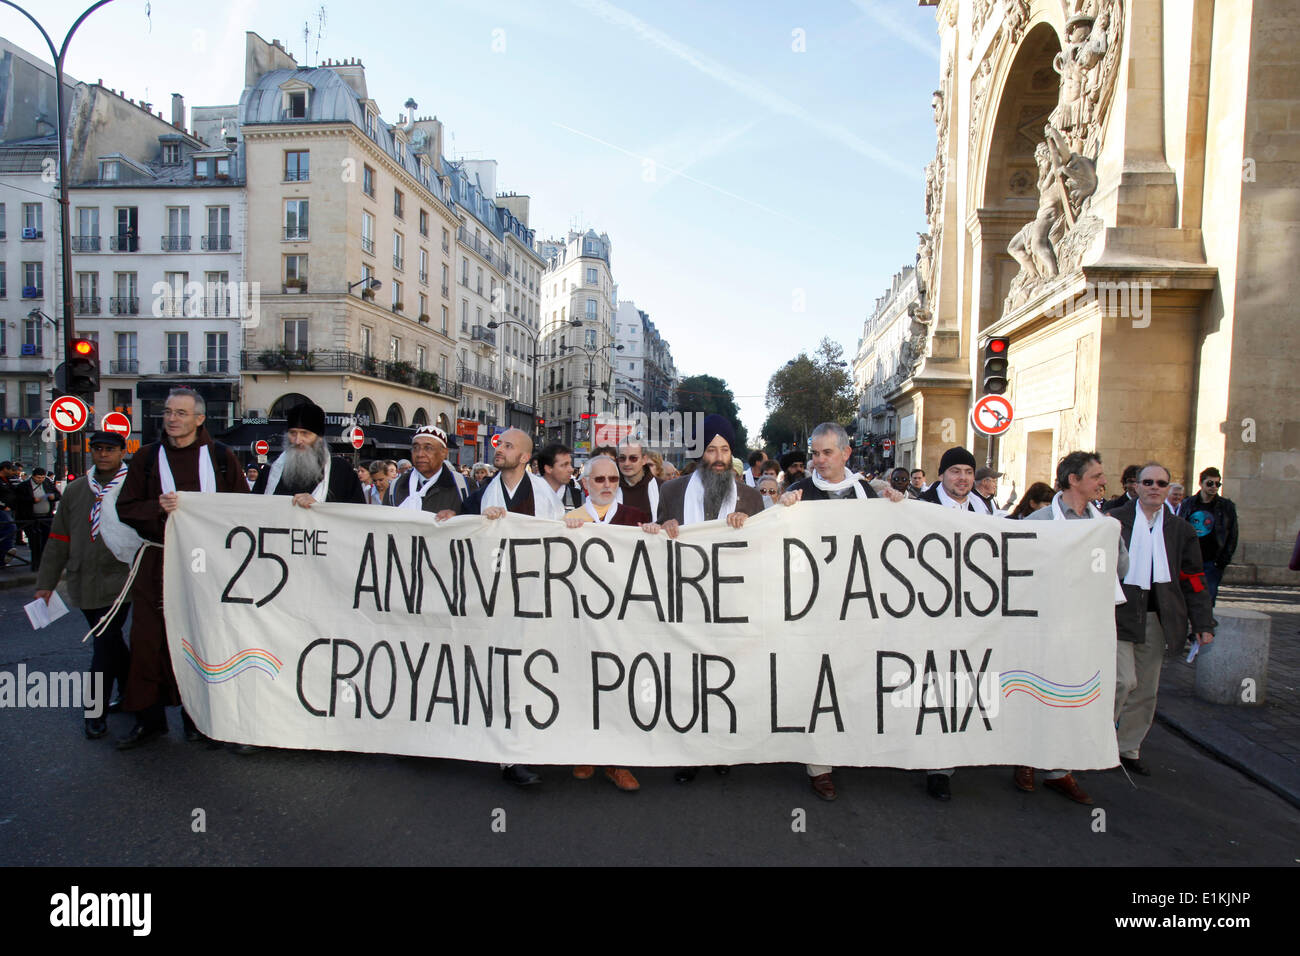 Inter-religious march for peace in Paris - Stock Image